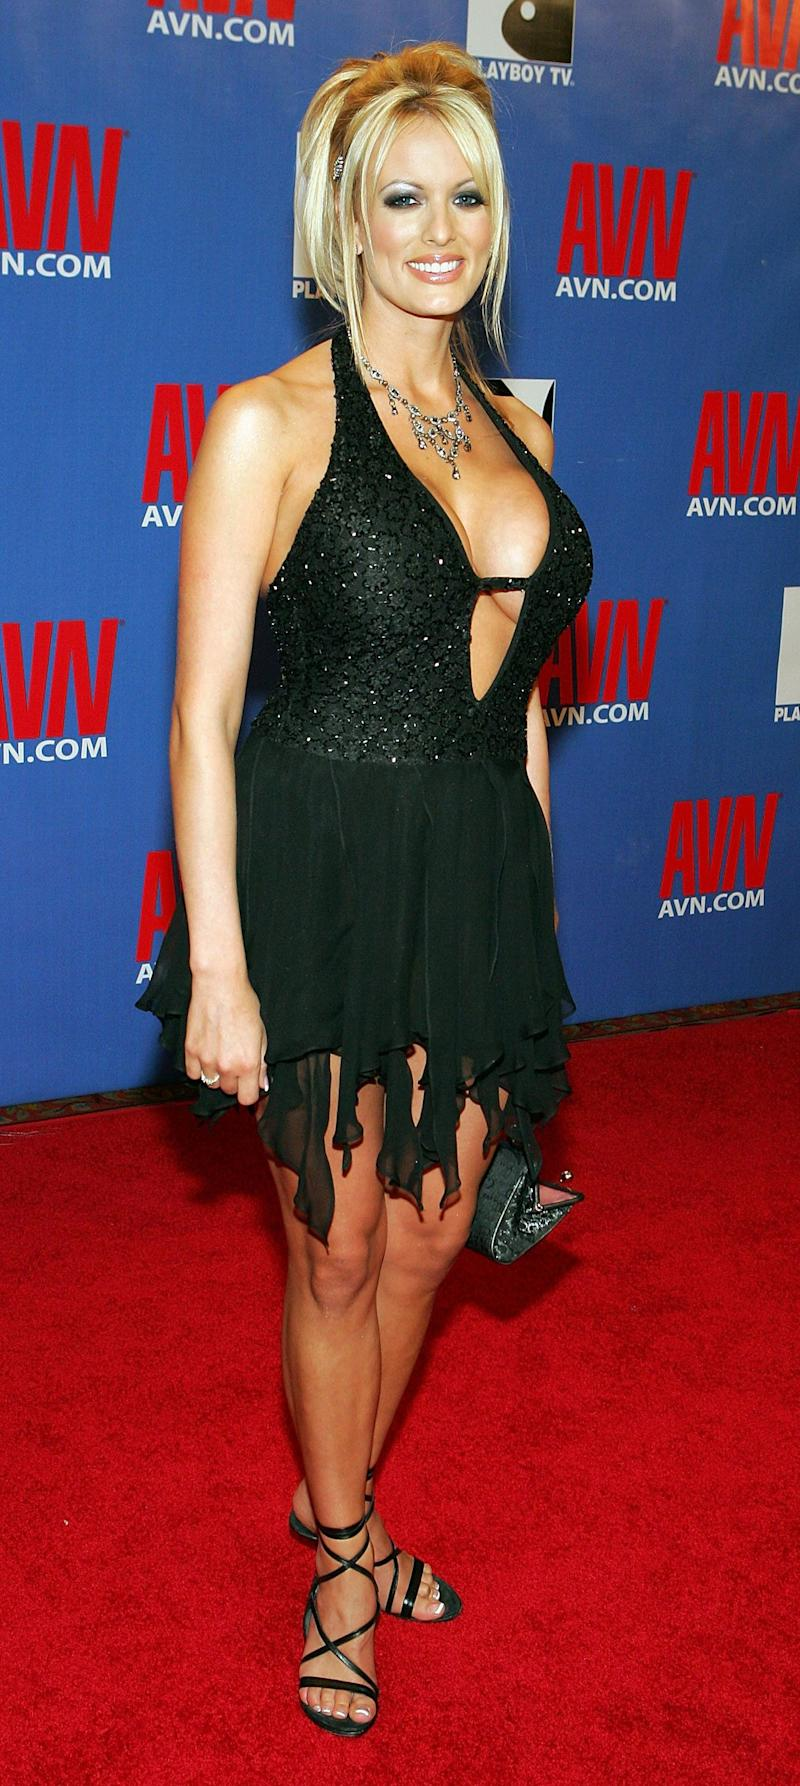 Atthe Adult Video News Awards Show at the Venetian Resort Hotel and Casino in Las Vegas.